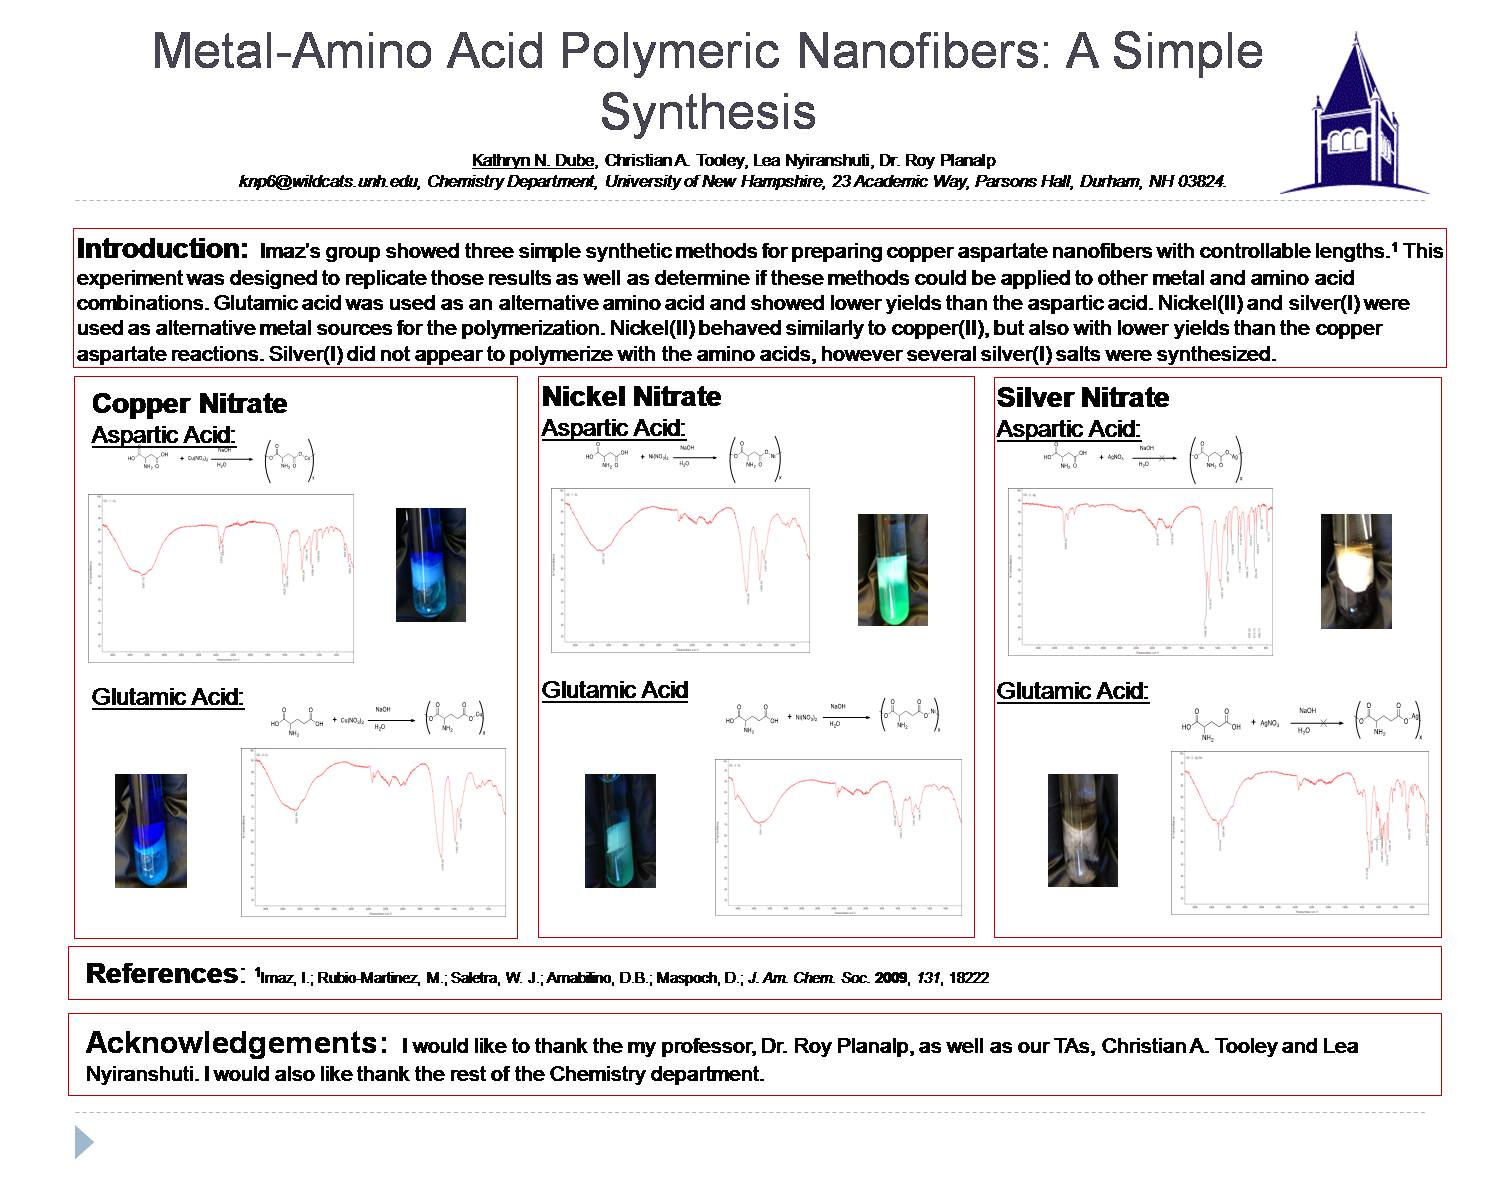 Metal-Amino Acid Polymeric Nanofibers: A Simple Sythesis by knp6